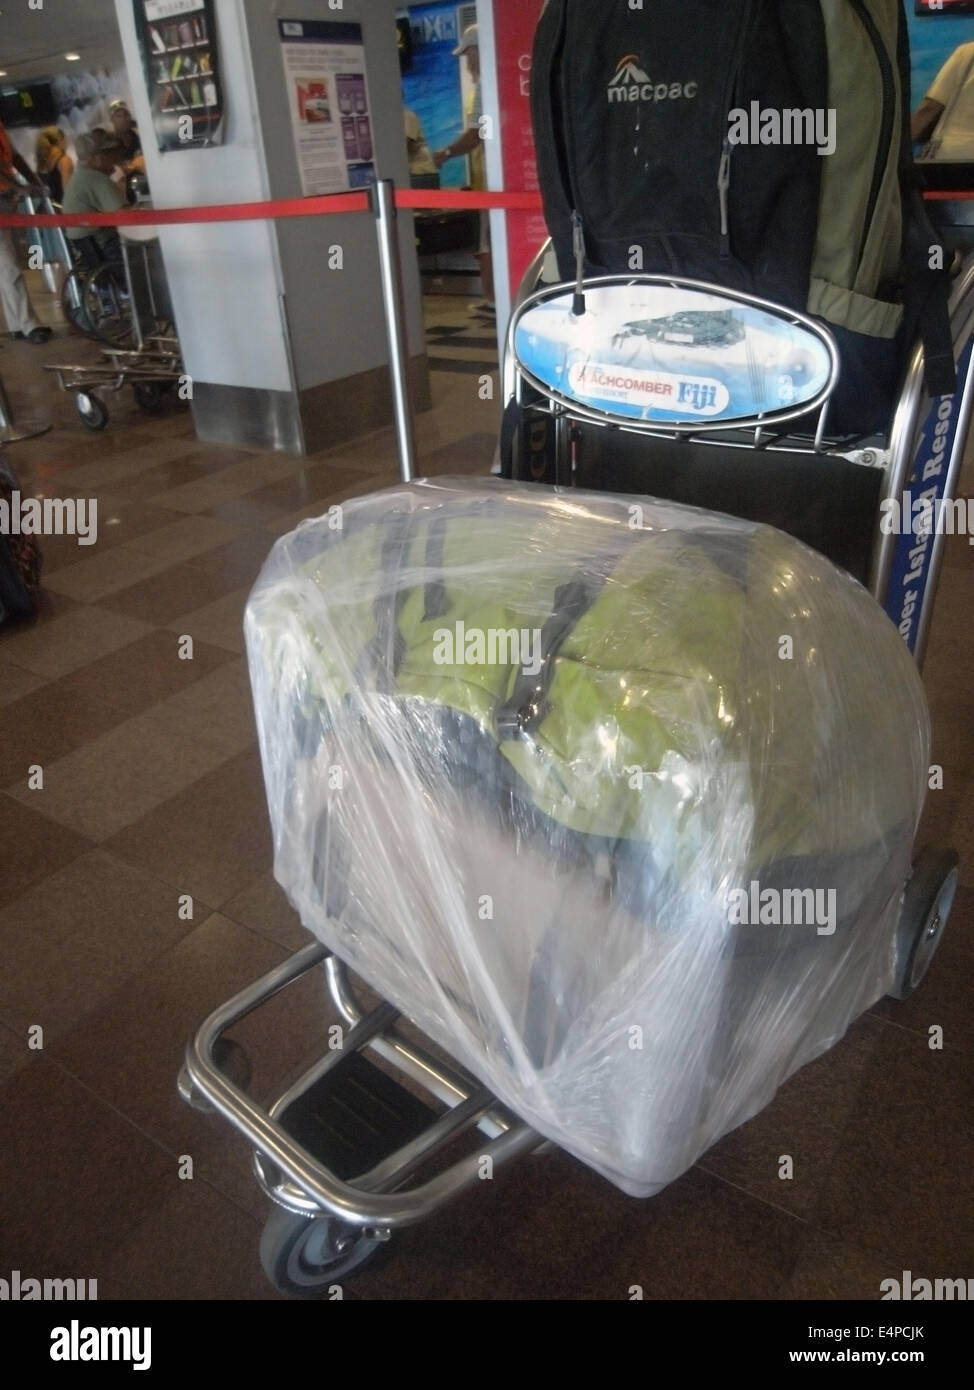 Two bags on trolley converted into one by plastic wrap to save on baggage restrictions, Nadi Airport, Fiji. No MR - Stock Image